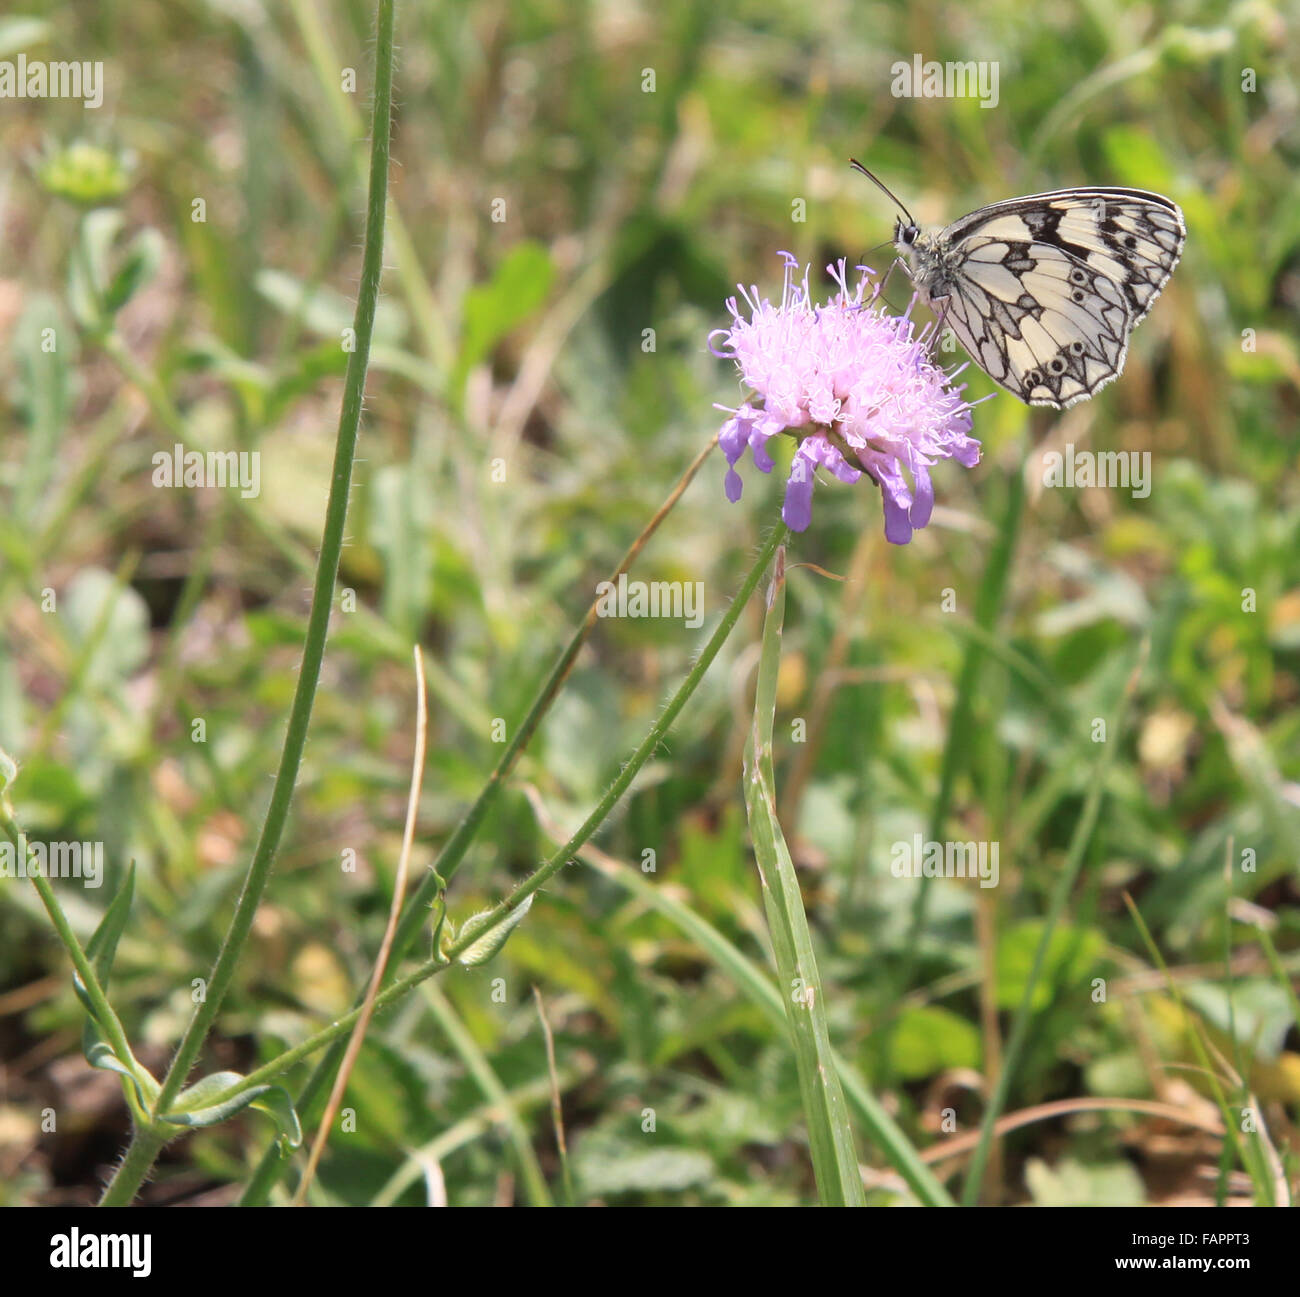 Marbled White Melanargia galathea butterfly on Knapweed flower England - Stock Image